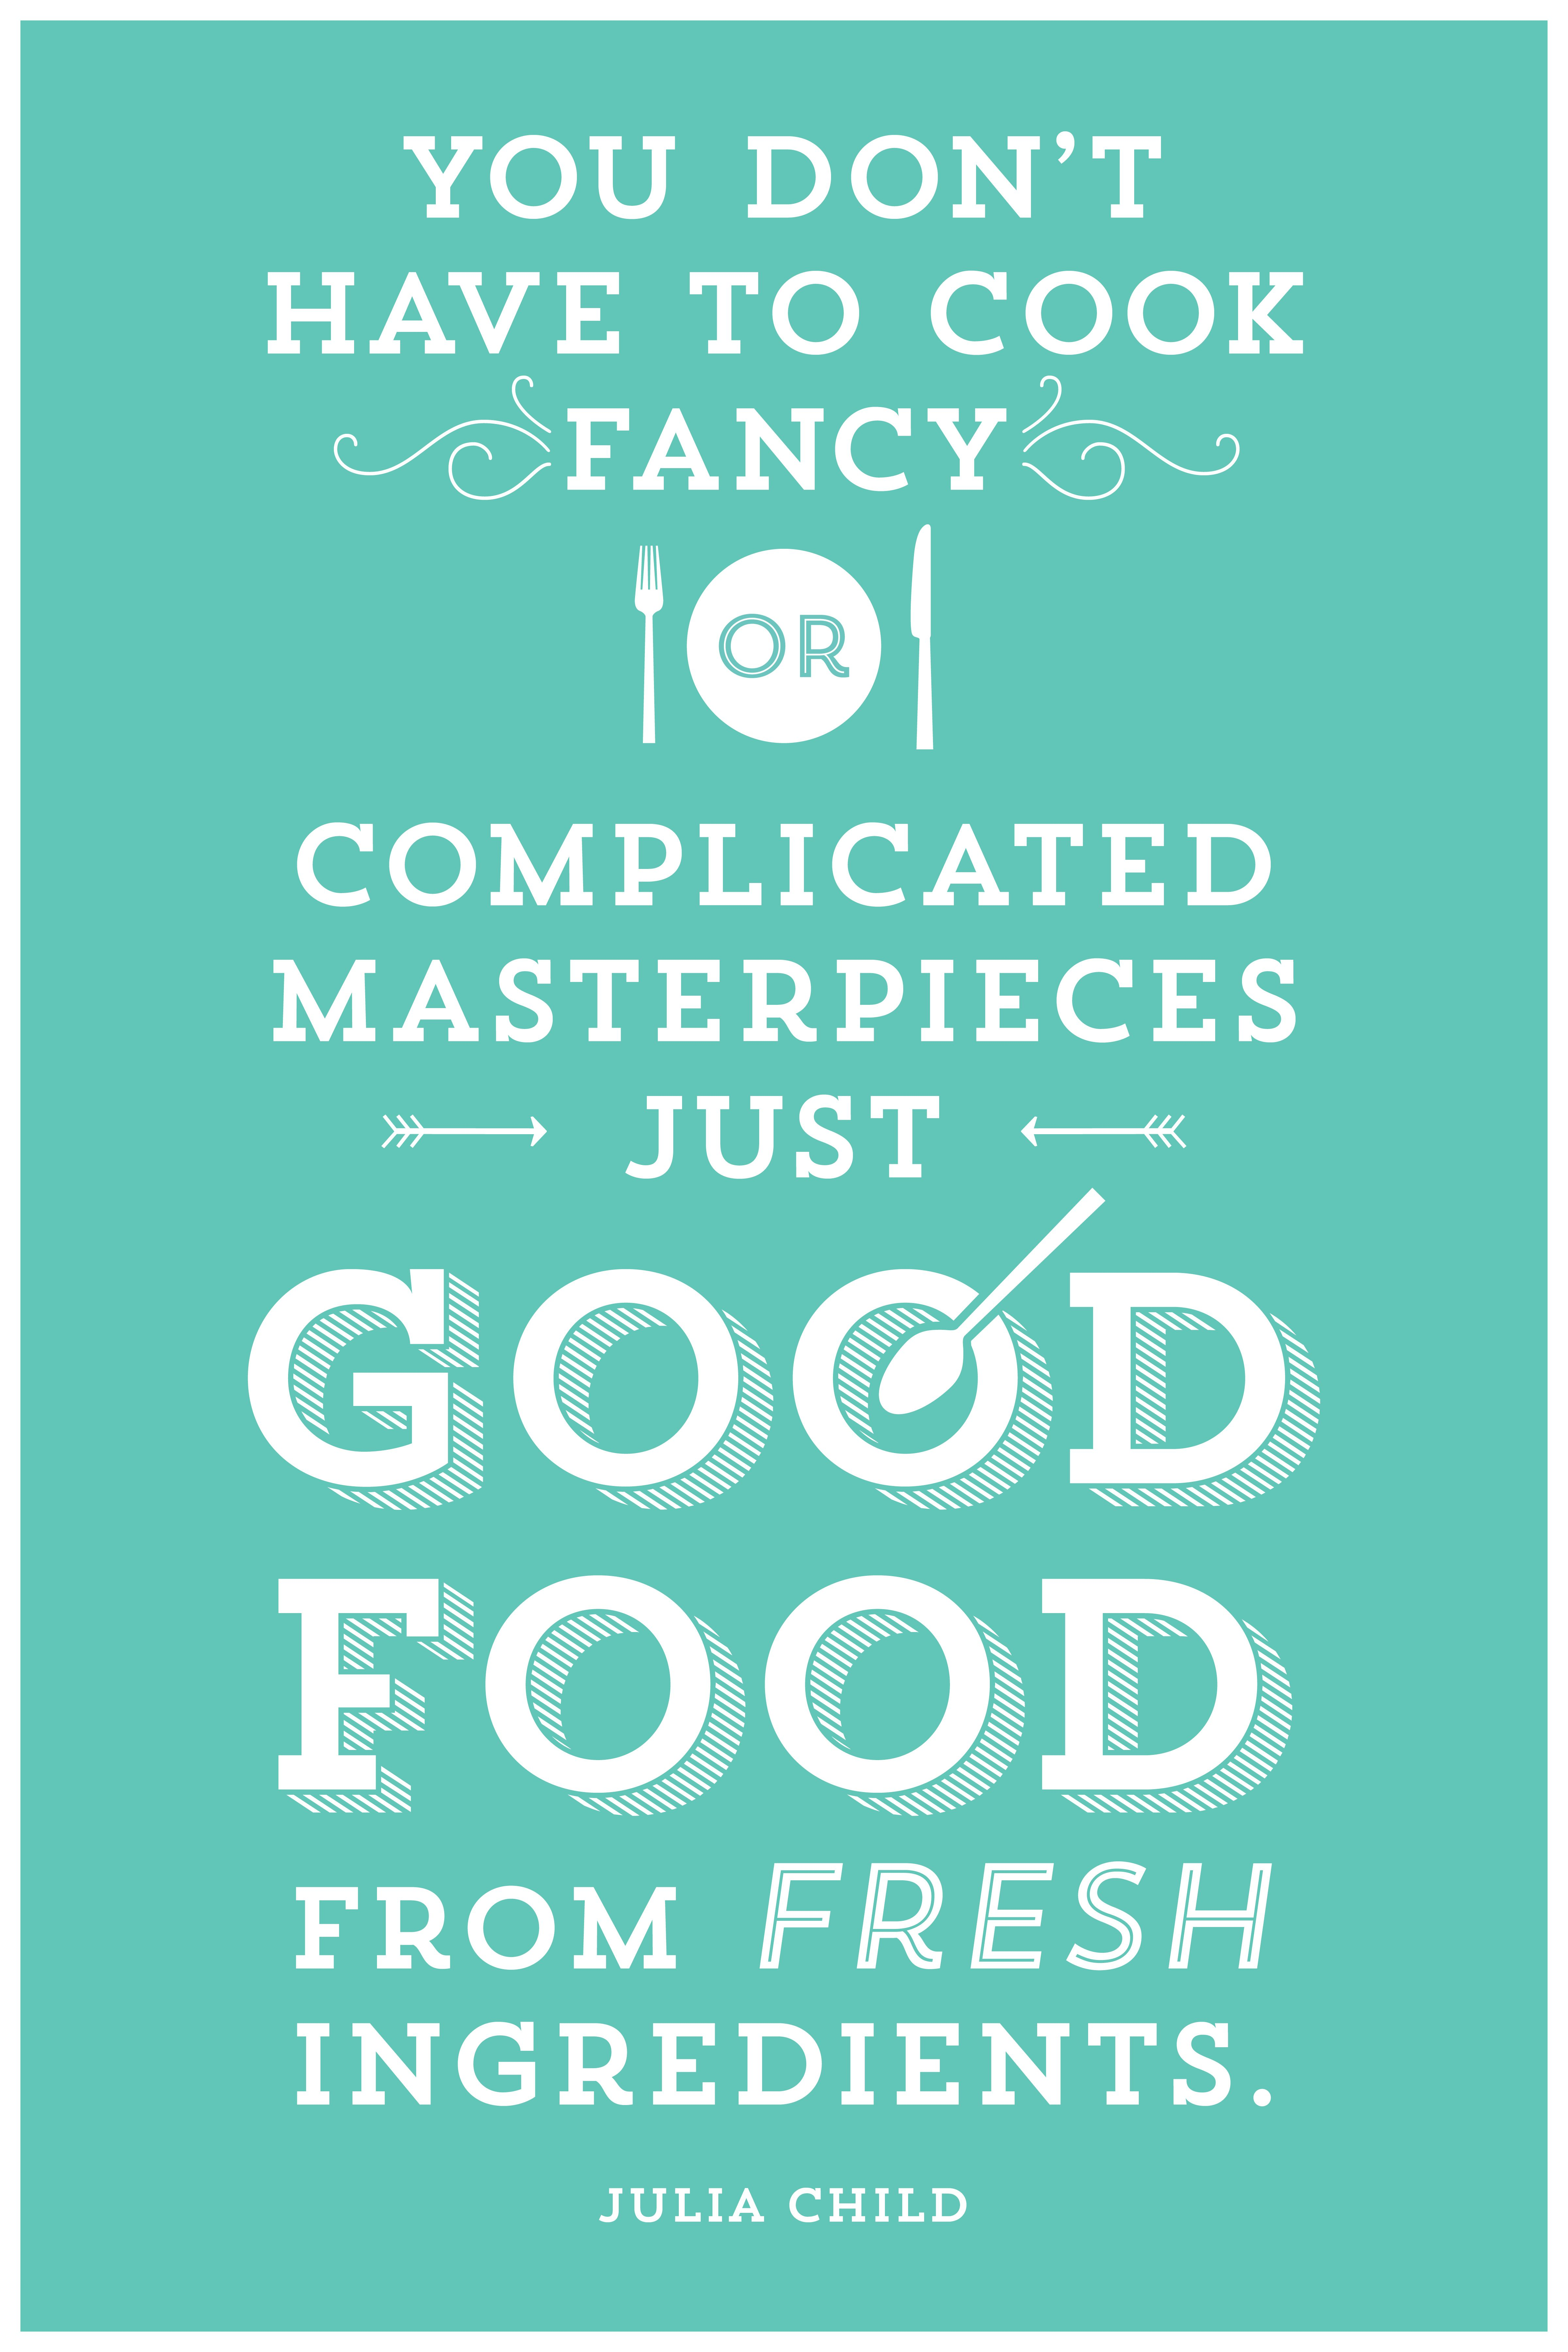 Cooking Quotes Fascinating Joyous Health_Julia Child Quote  Good Words  Pinterest  Julia